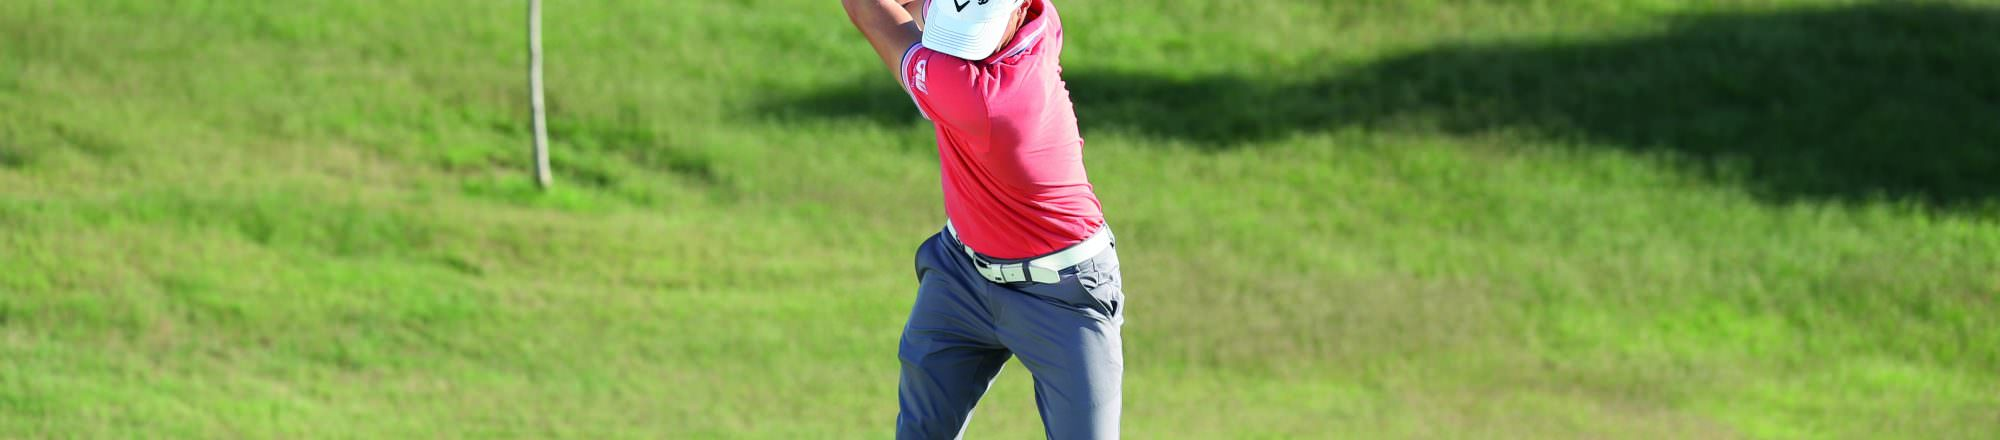 Swing Sequence: Alex Noren breaks down his moves